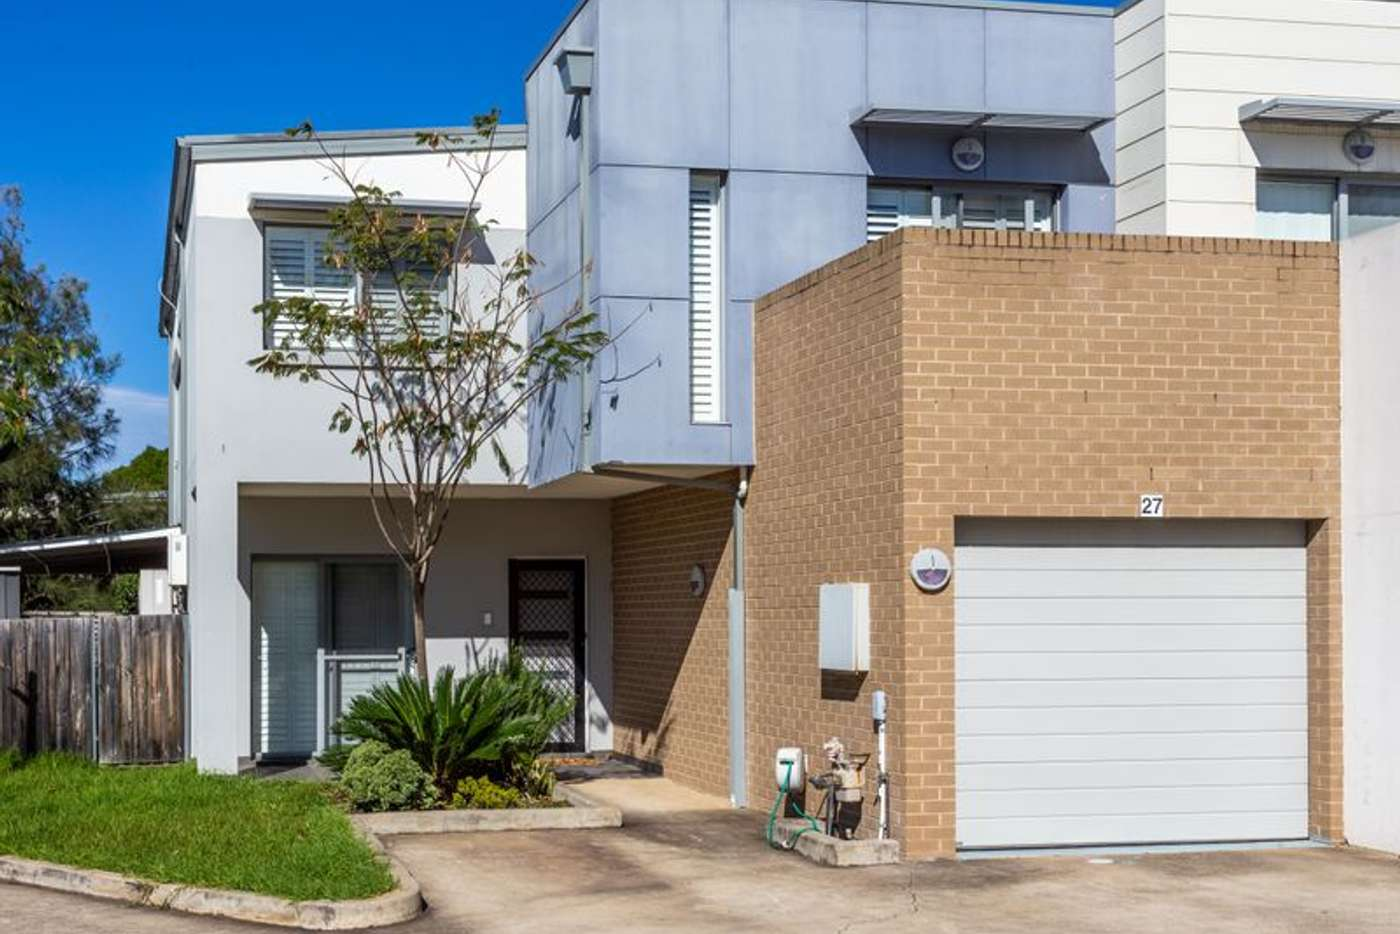 Main view of Homely townhouse listing, 27/23 Watkins Street, Baulkham Hills NSW 2153